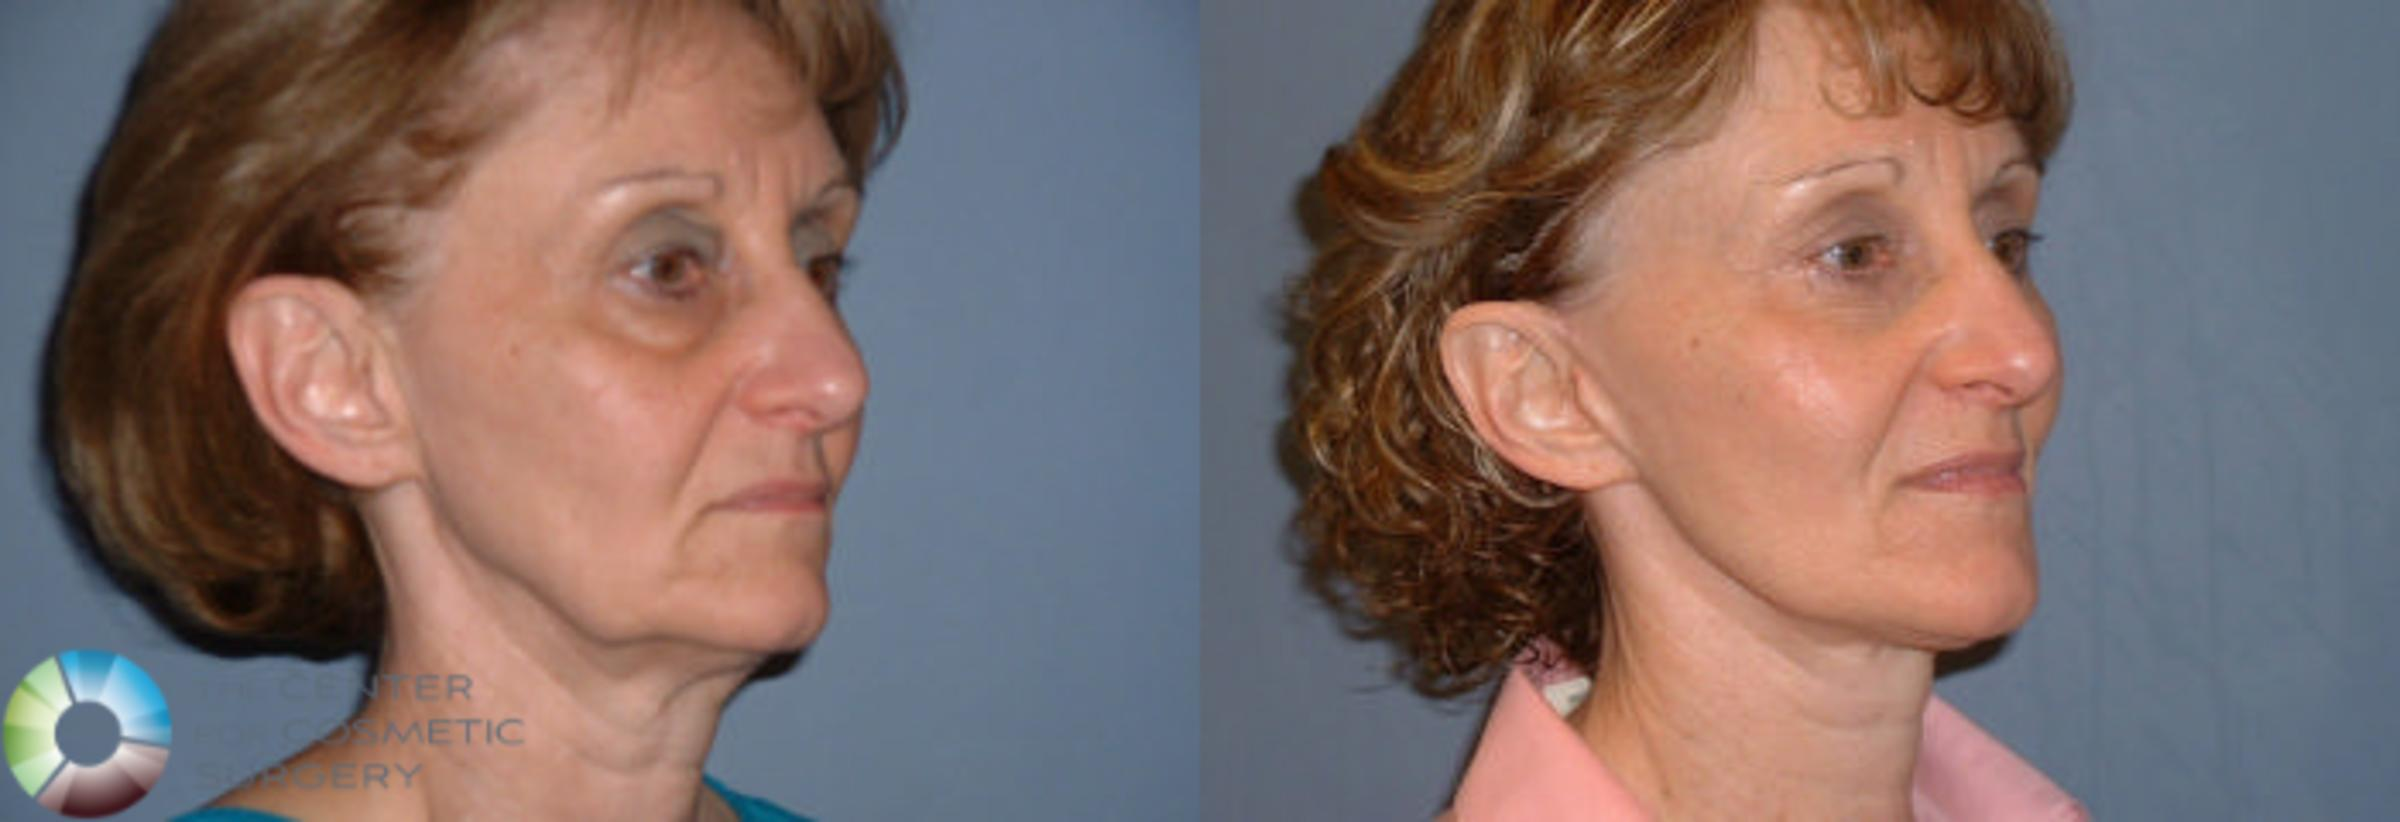 Mini Facelift Case 55 Before & After View #2 | Golden, CO | The Center for Cosmetic Surgery